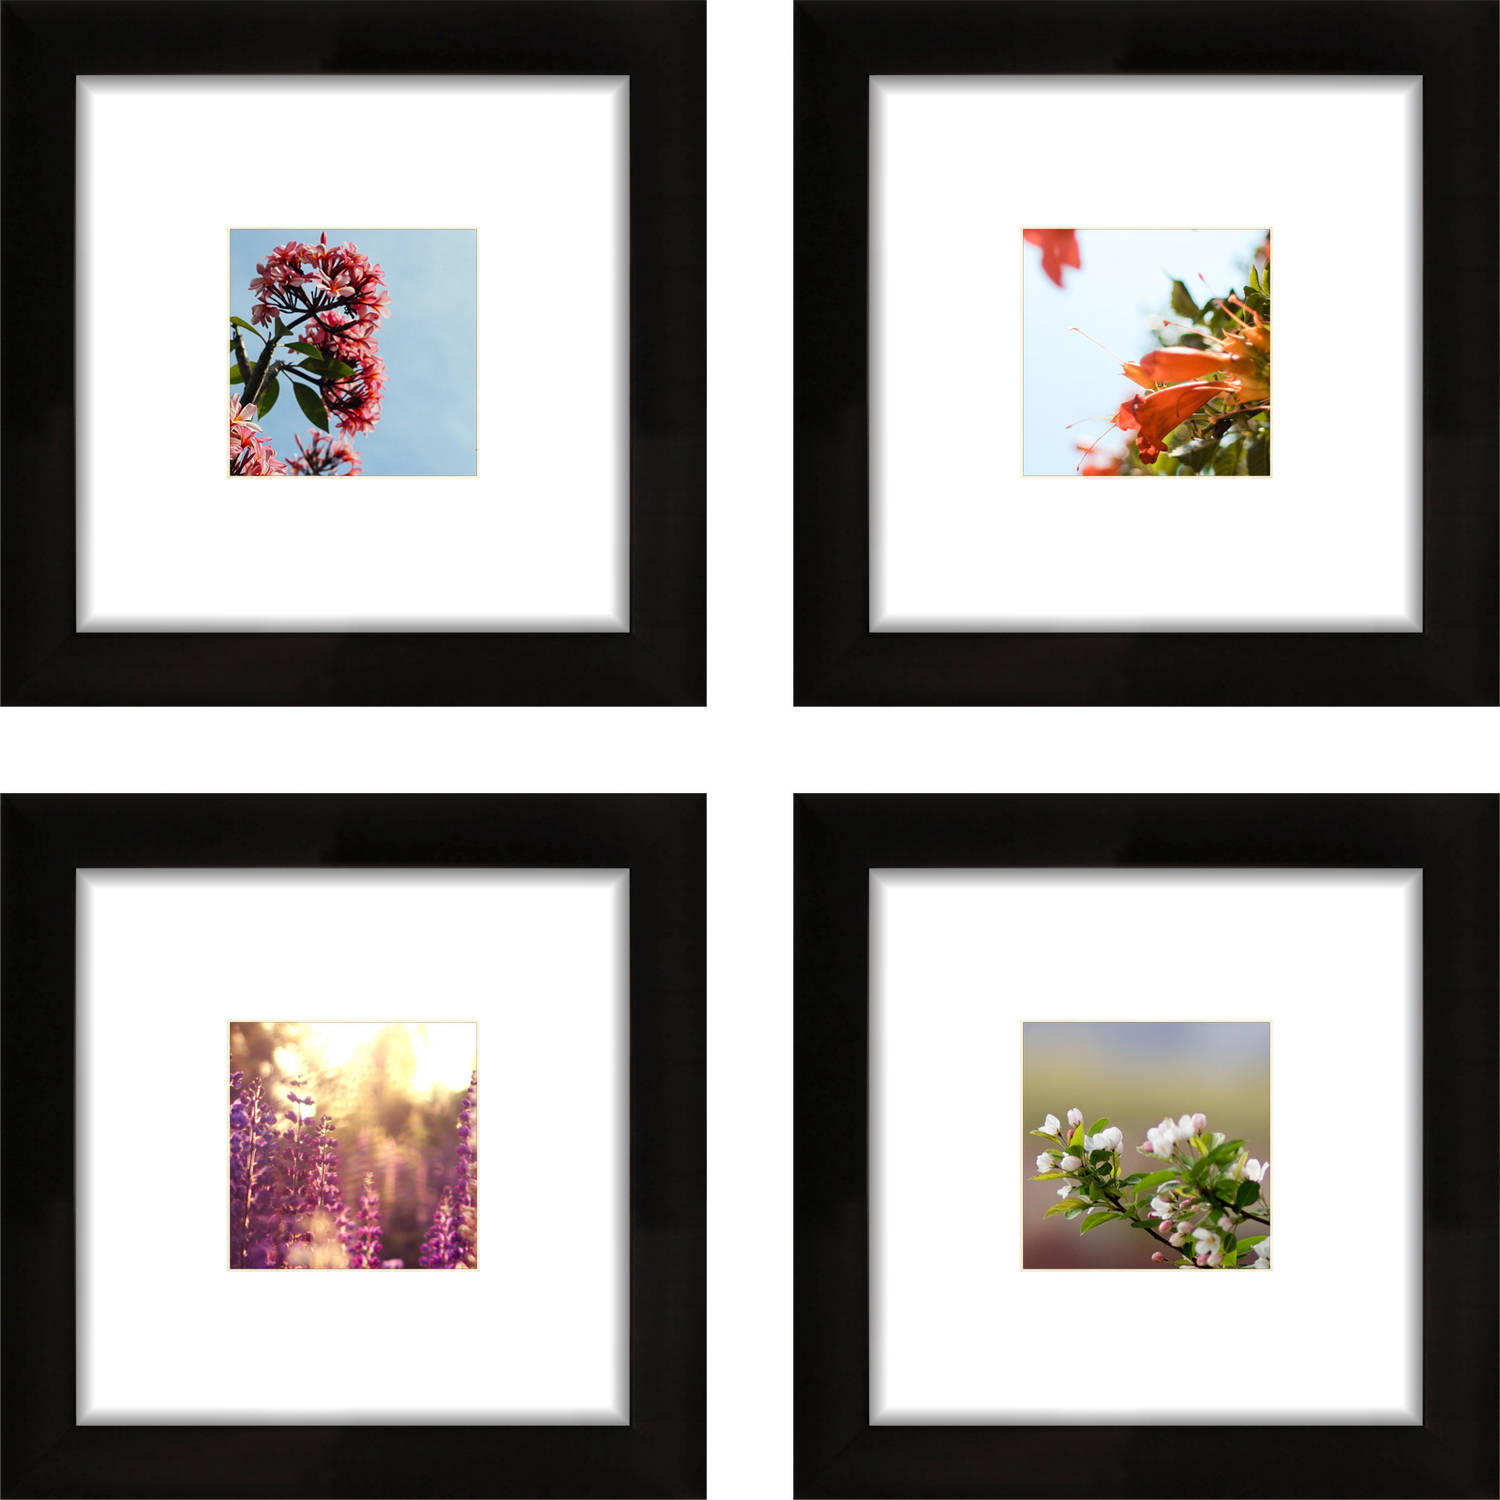 craig frames 8x8 black picture frame smartphone collection single white mat with 4x4 square opening set of 4 walmartcom